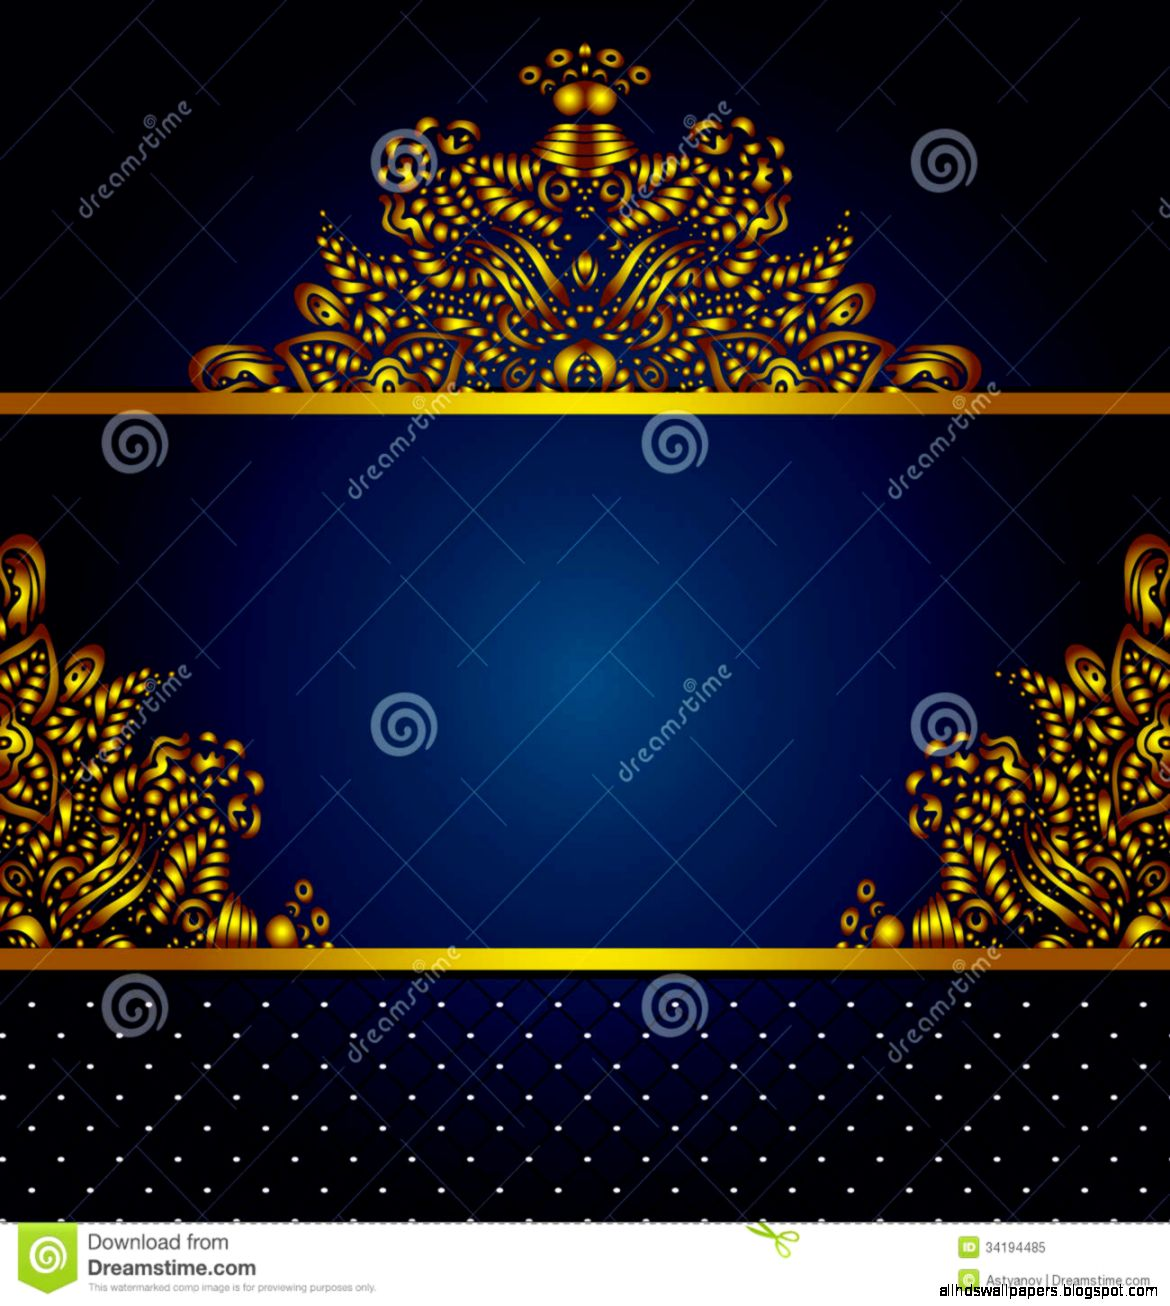 Royal blue background wallpaper all hd wallpapers for Dark blue and gold wallpaper